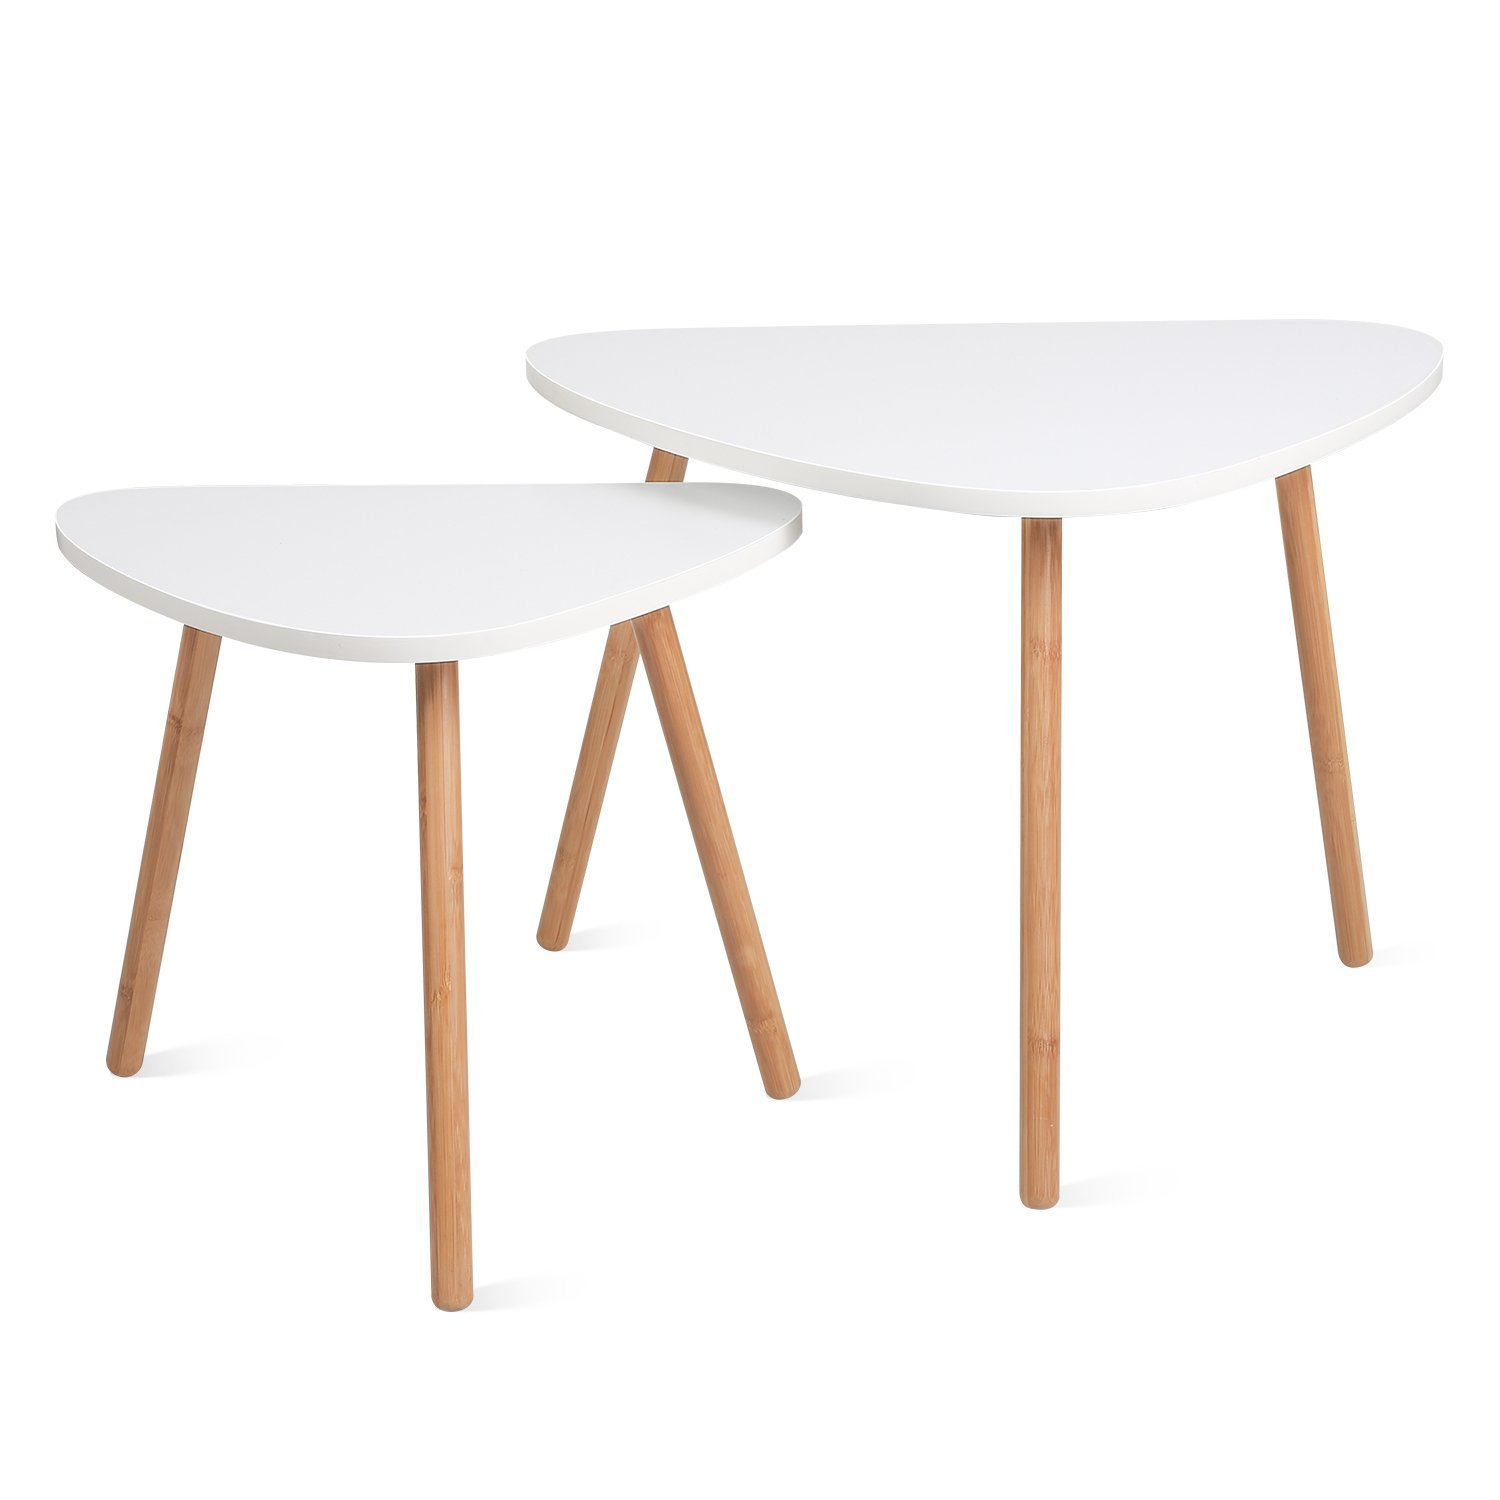 homfa nesting coffee end tables modern decor side table small accent under for home and office white set kitchen dining unfinished desk patio chairs clearance chair pads target